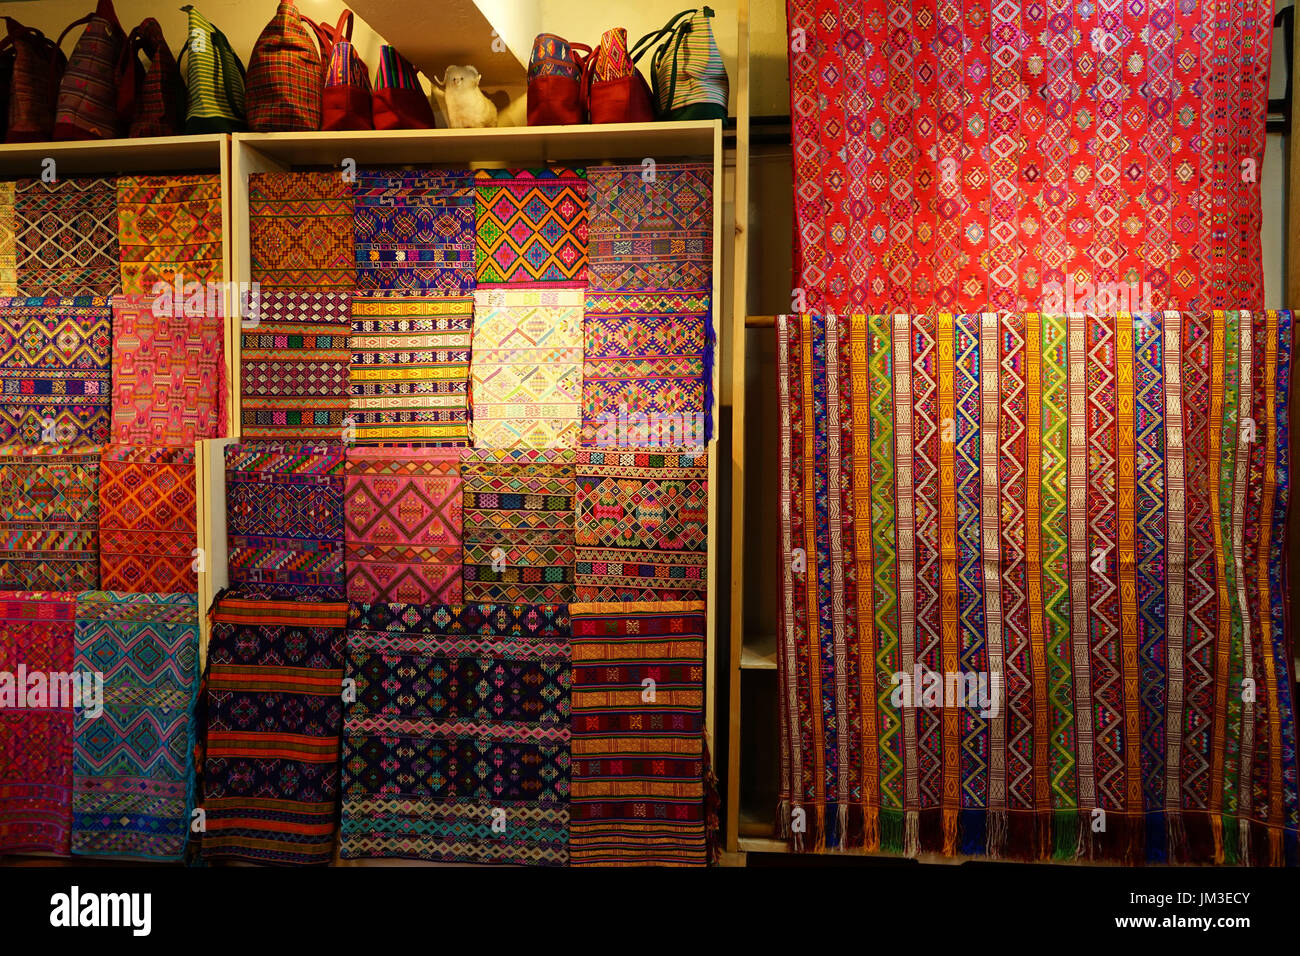 Hand woven fabric at the Textile factory in Thimphu, Bhutan - Stock Image